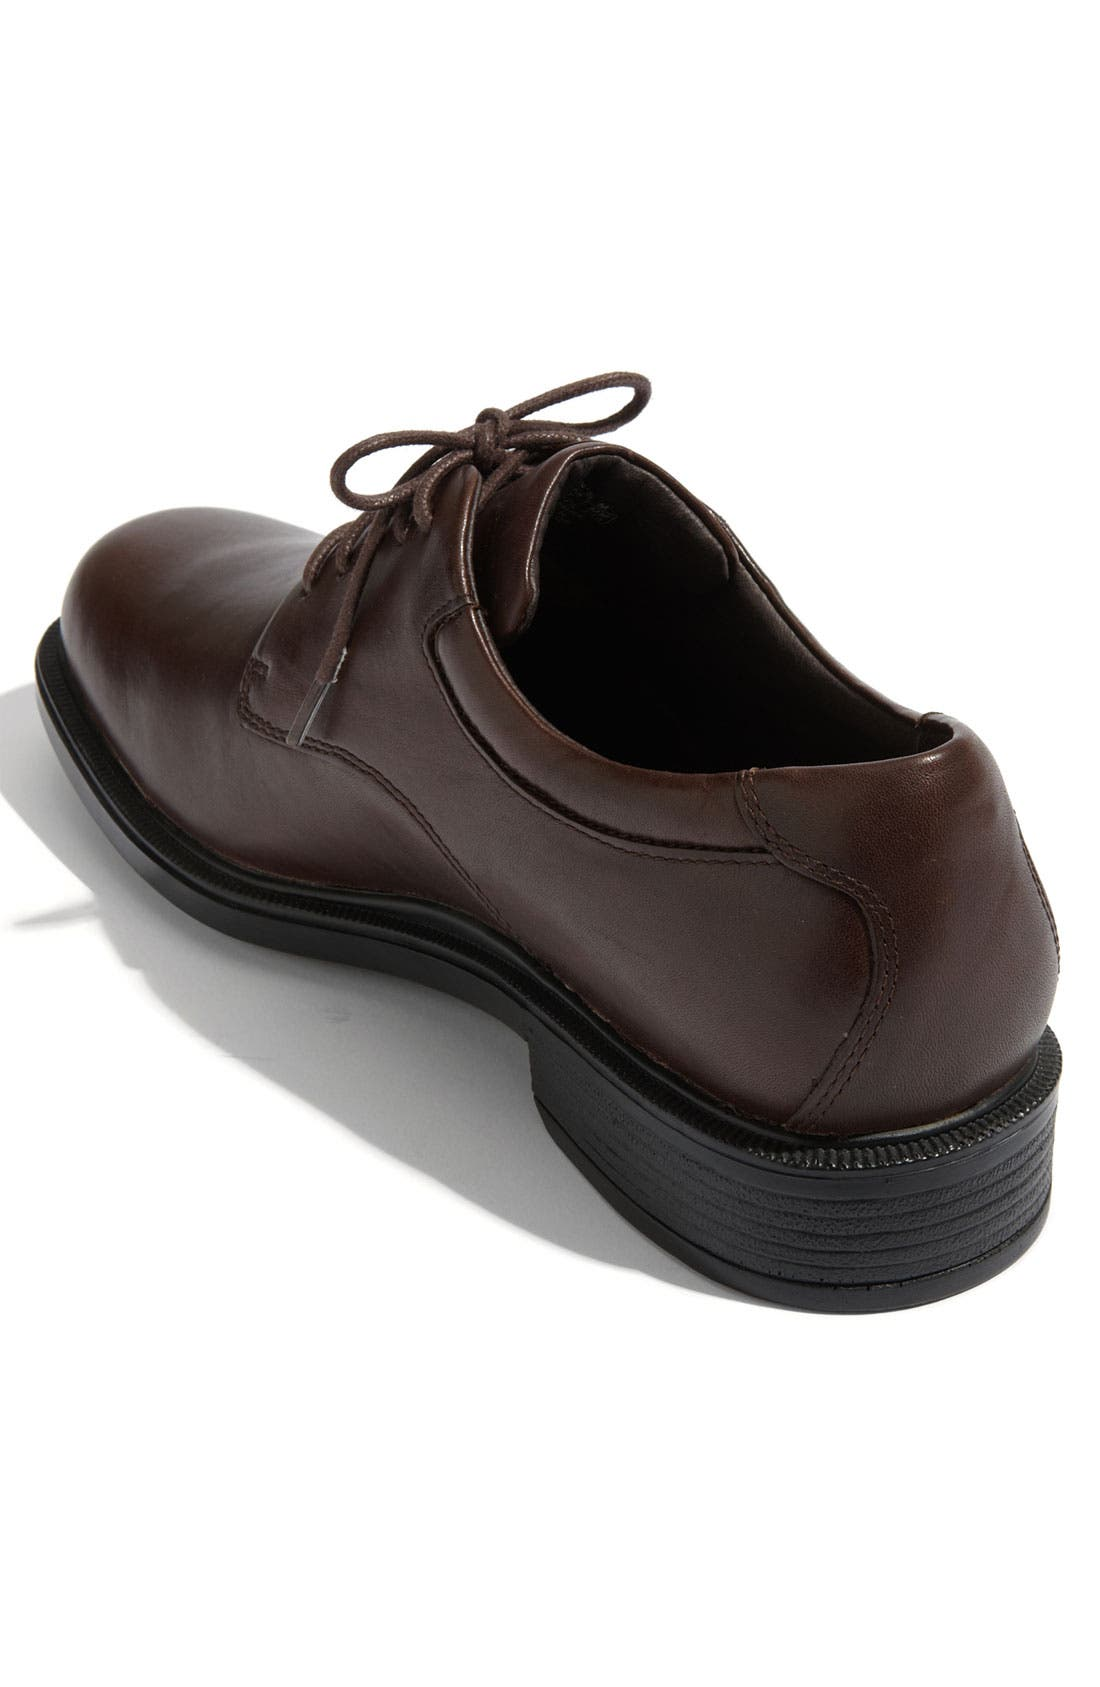 'Margin' Oxford,                             Alternate thumbnail 5, color,                             CHOCOLATE LEATHER